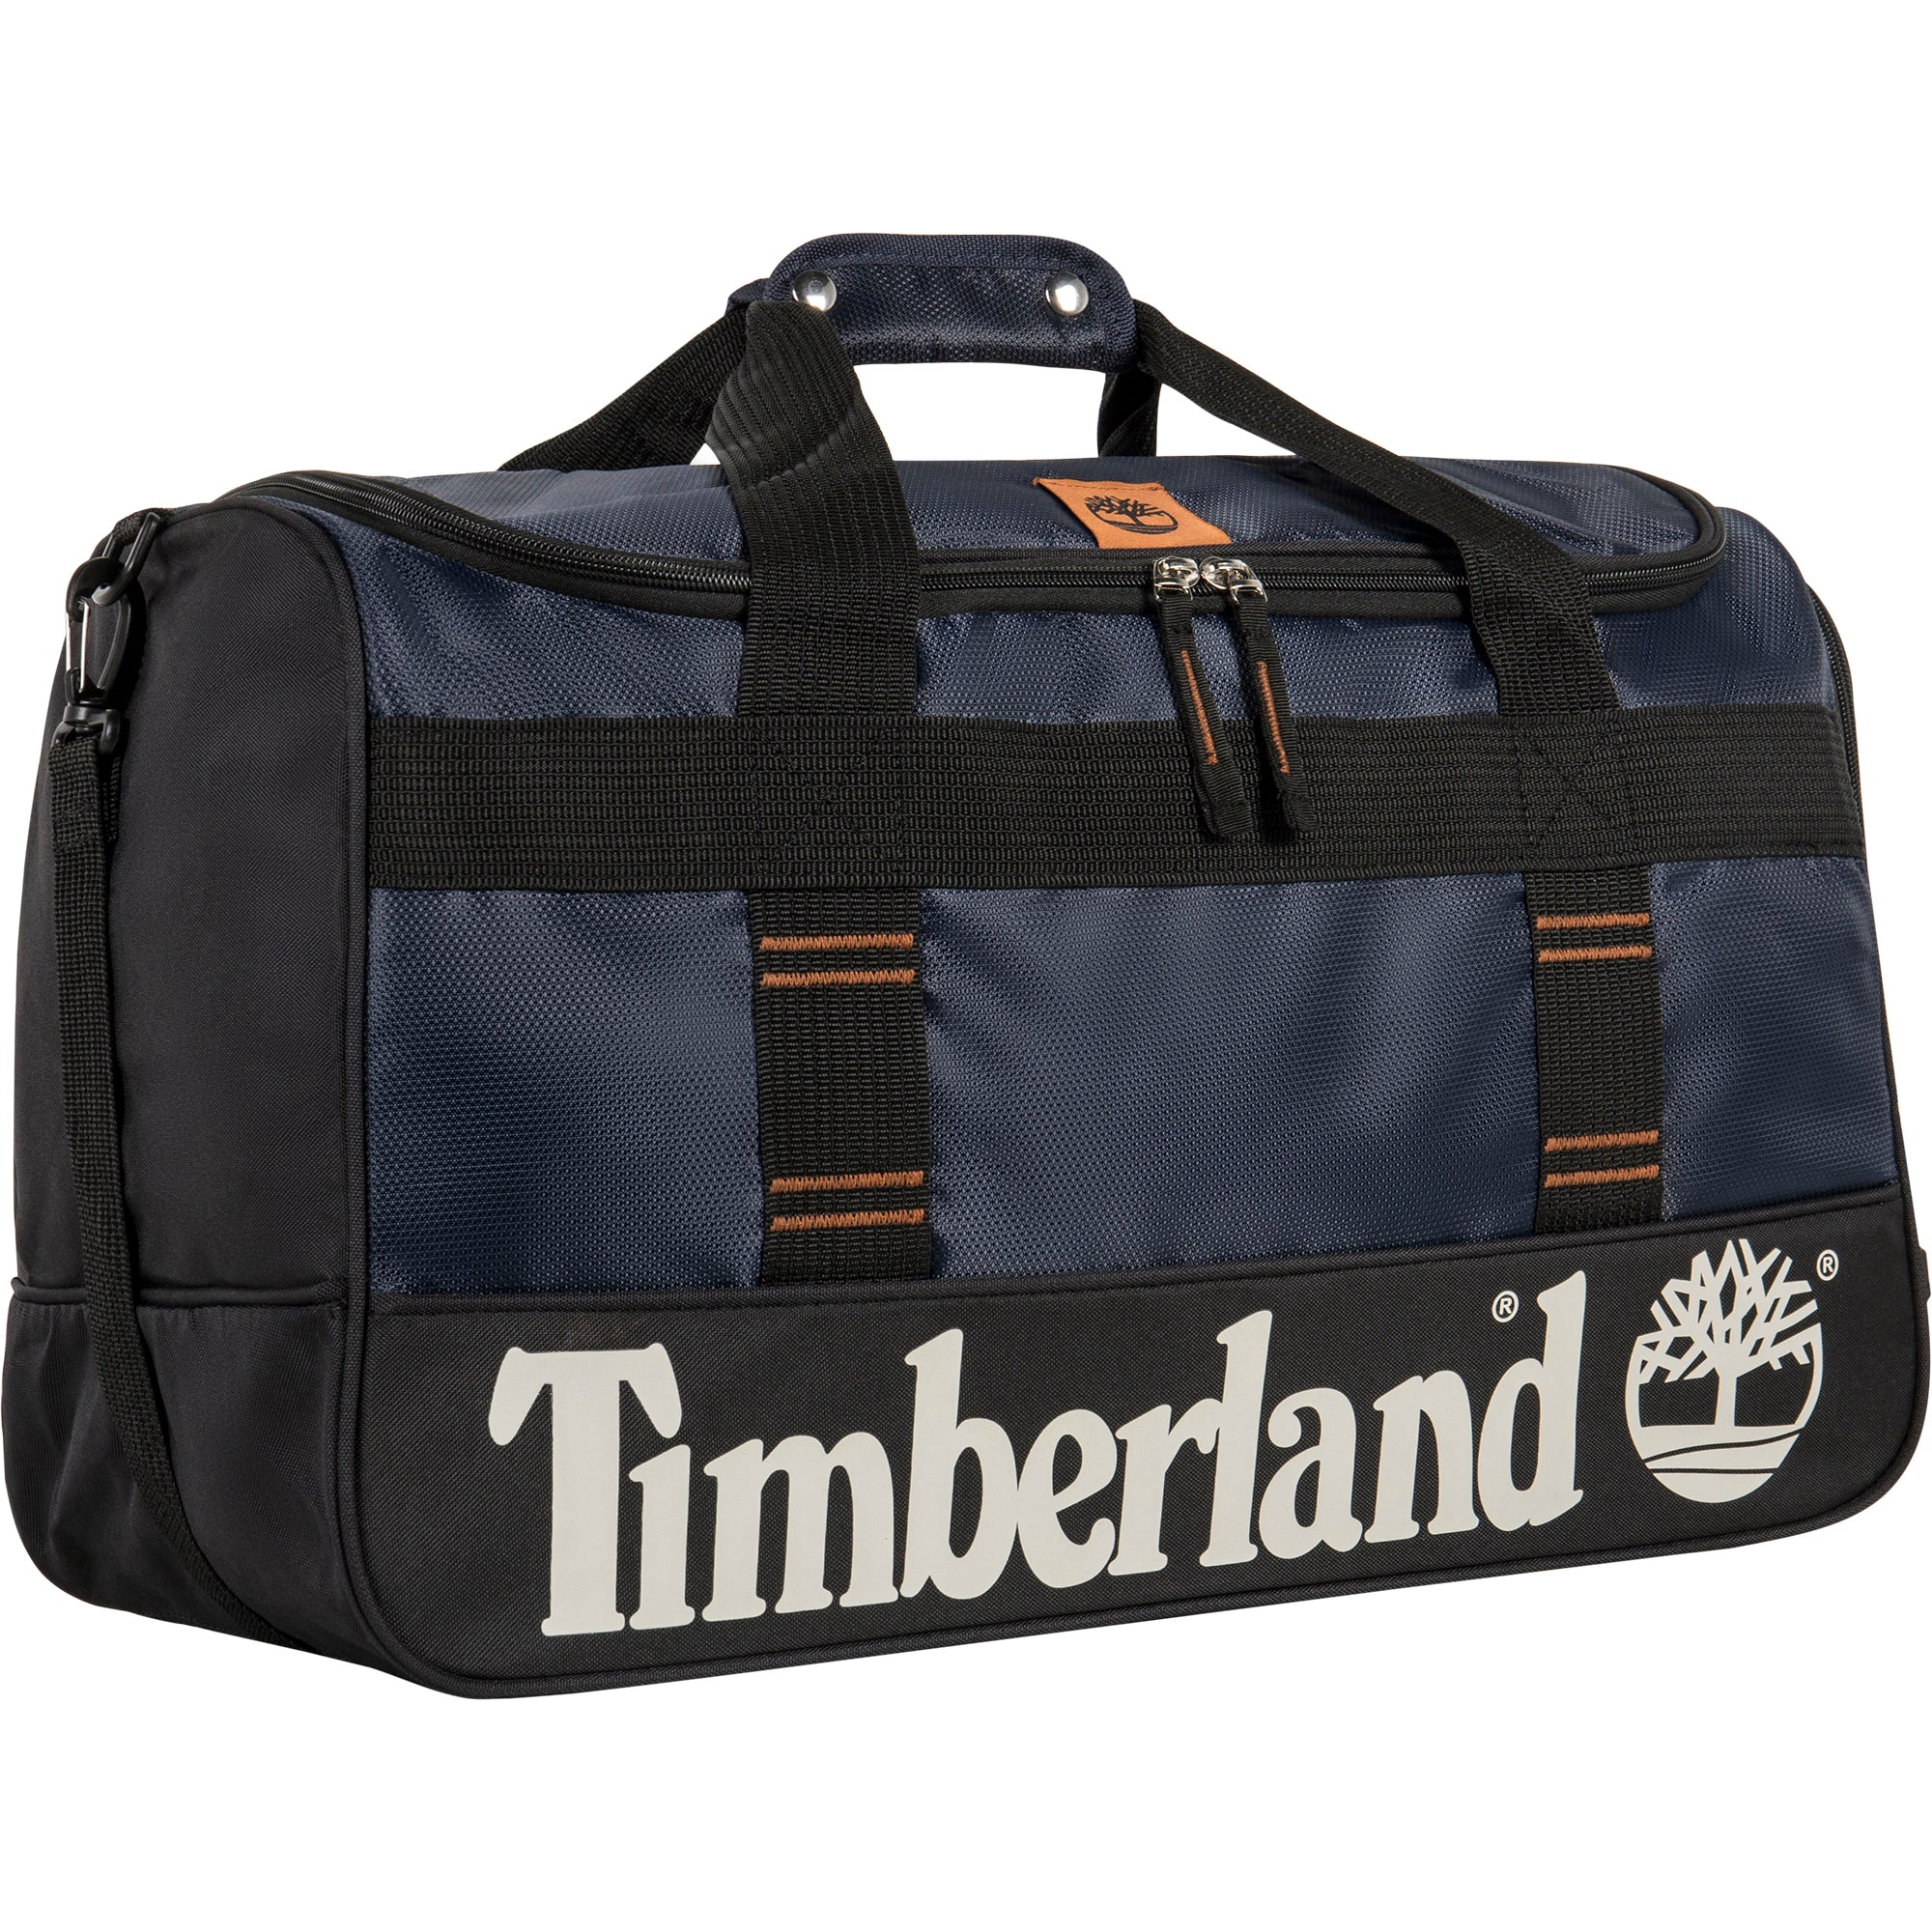 2e7018bbba Timberland Jay Peak Trail 22 inch Duffle – Luggage Guy